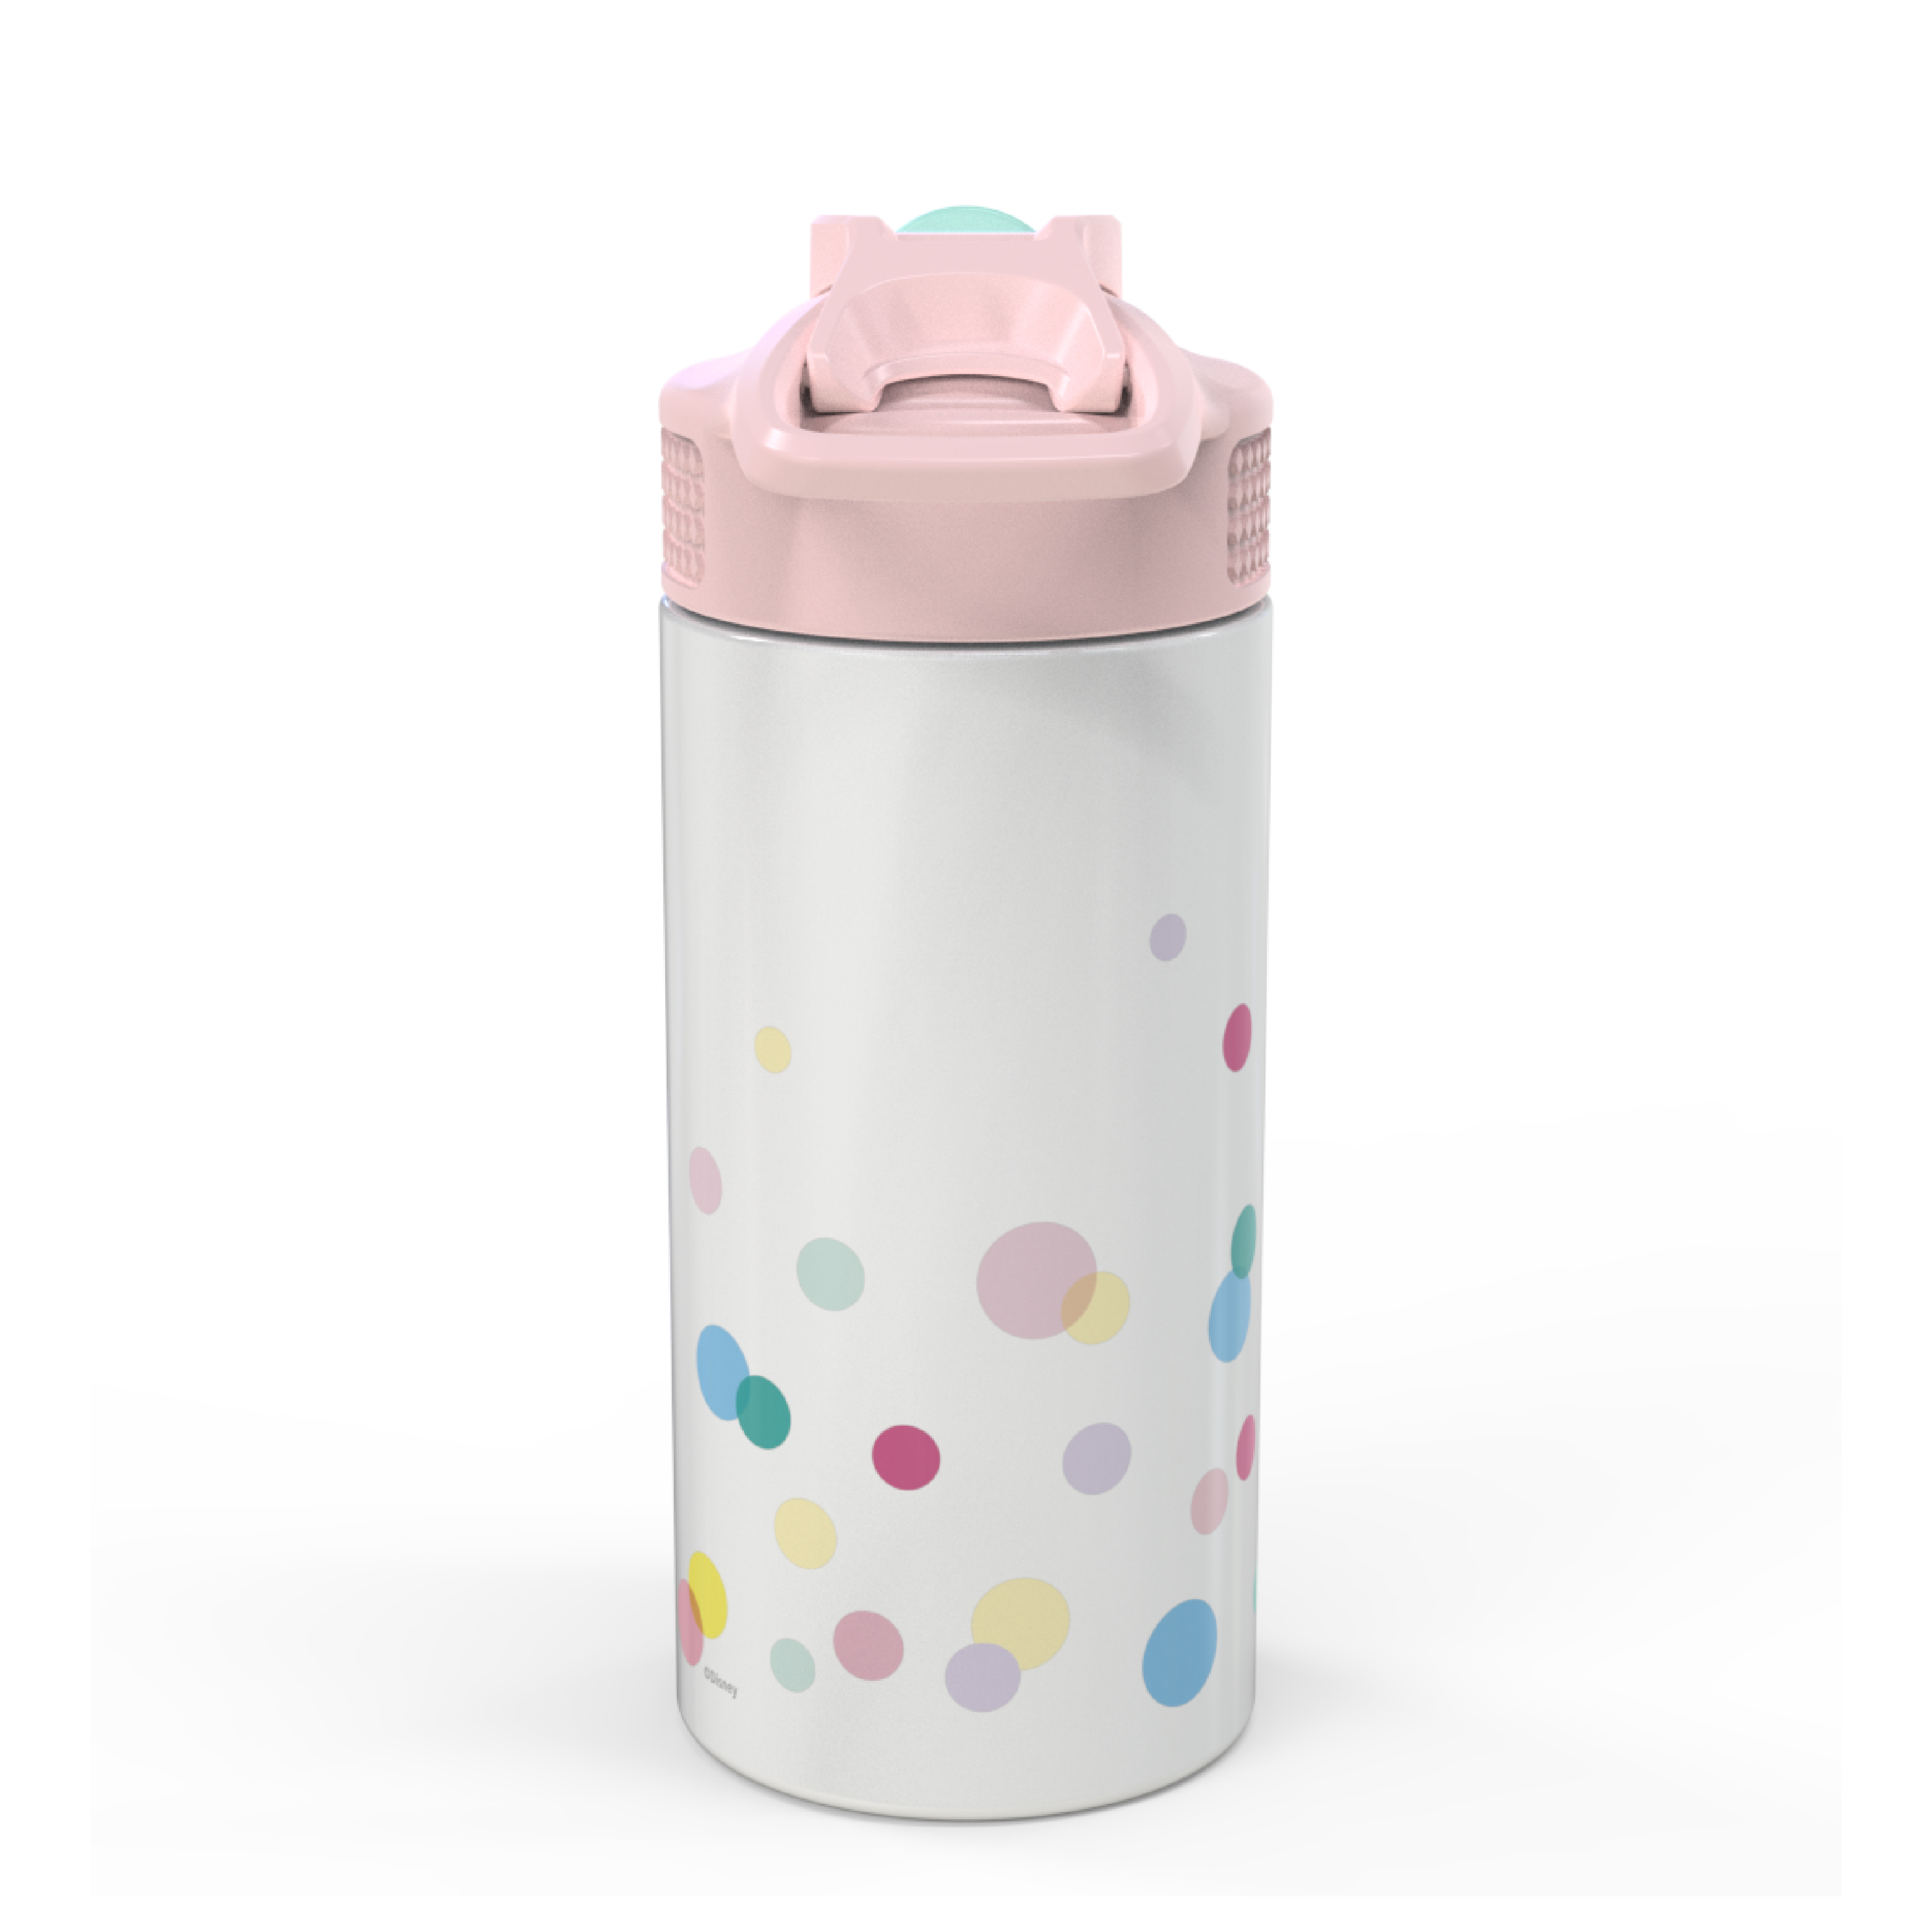 Disney 14 ounce Stainless Steel Vacuum Insulated Water Bottle, Minnie Mouse slideshow image 4